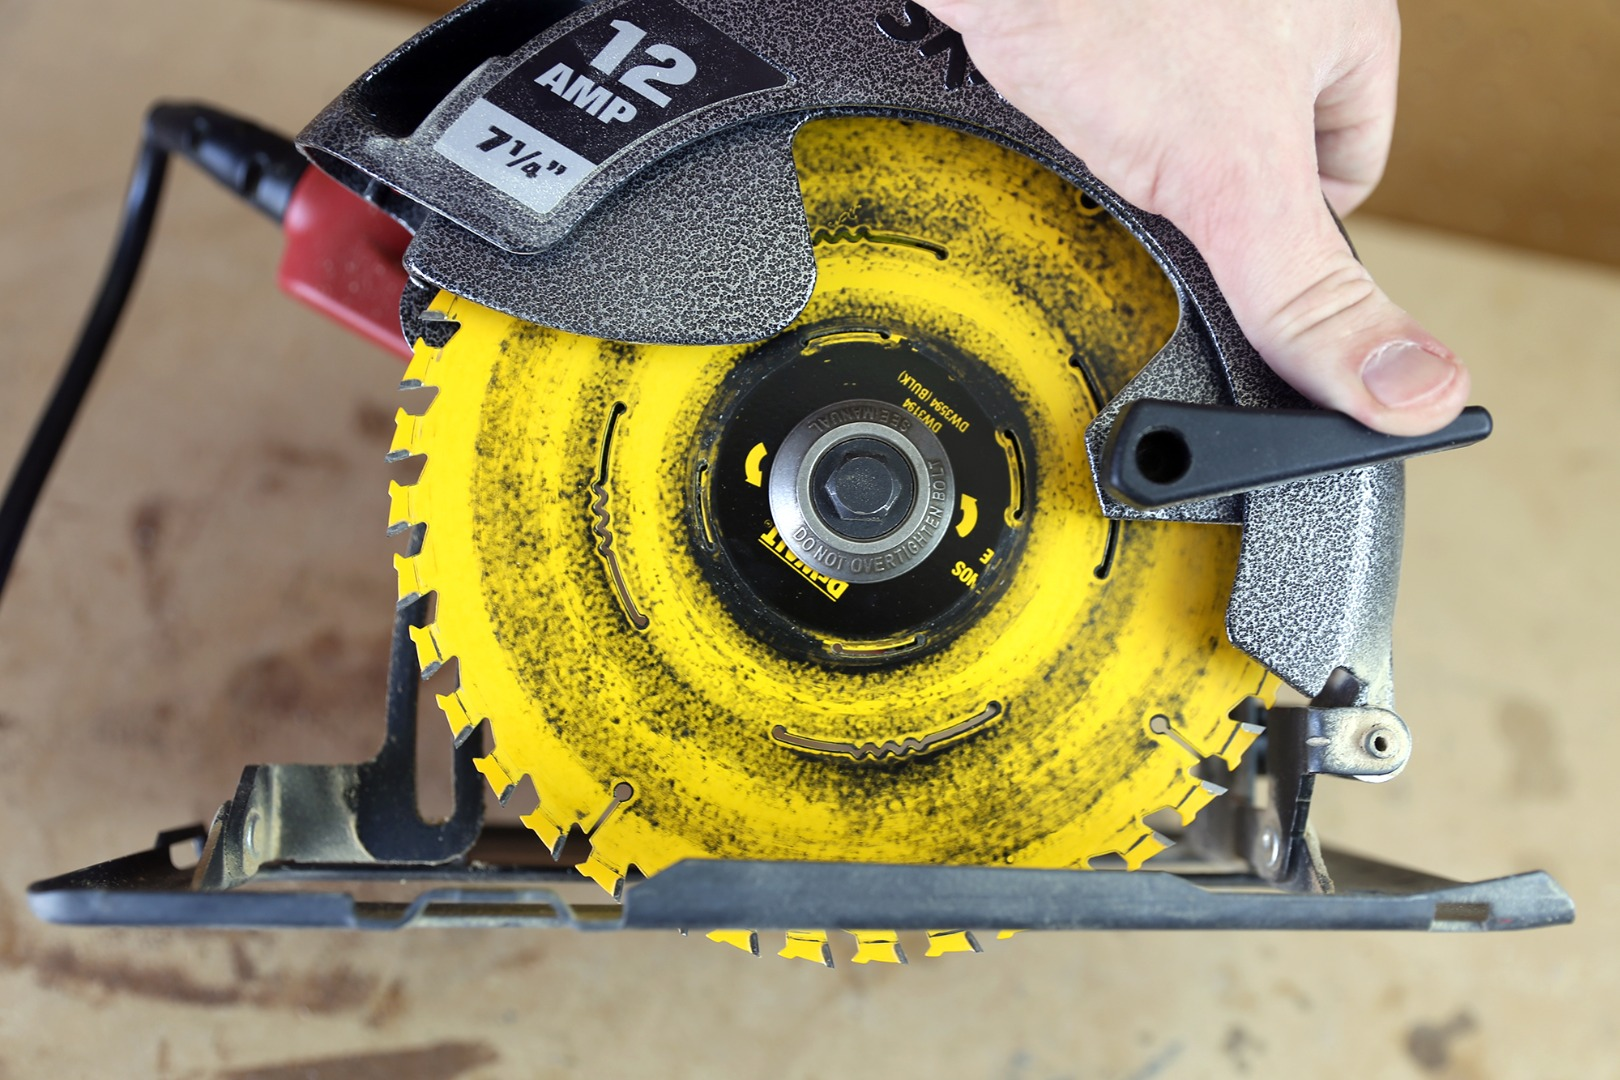 The Plate Of A Circular Saw Can Be Raised And Lowered To Expose More Or  Less Of The Blade. The Plate Height Can Be Adjusted By Releasing A Tension  Lever On ...